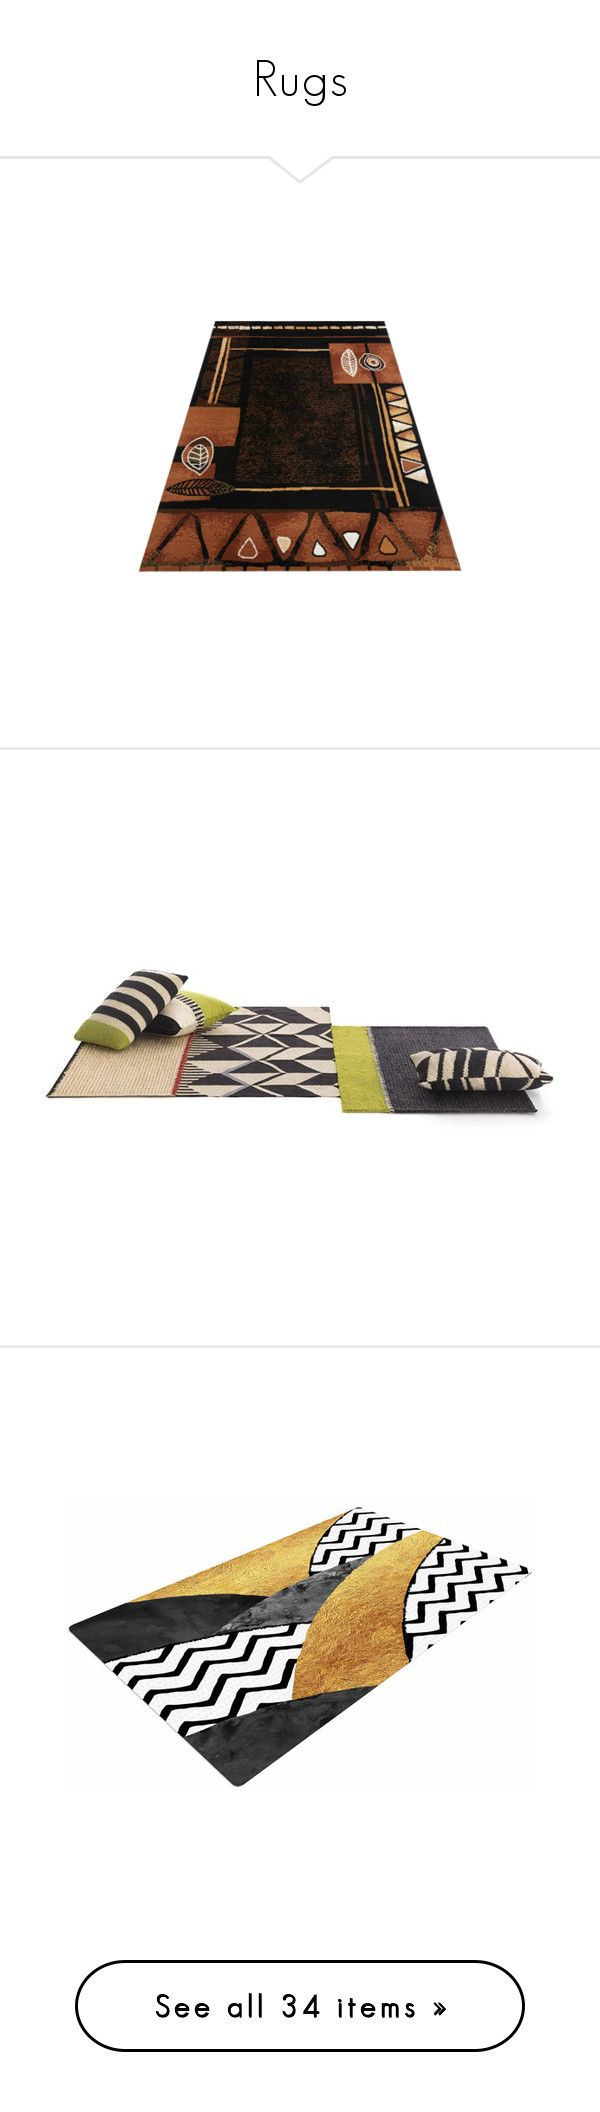 """""""Rugs"""" by gvoncheap ❤ liked on Polyvore featuring home, rugs, geometric wool rug, rectangular rugs, rectangle rugs, rustic rugs, rustic area rugs, zig zag rug, black white chevron rug and black and white zig zag rug"""